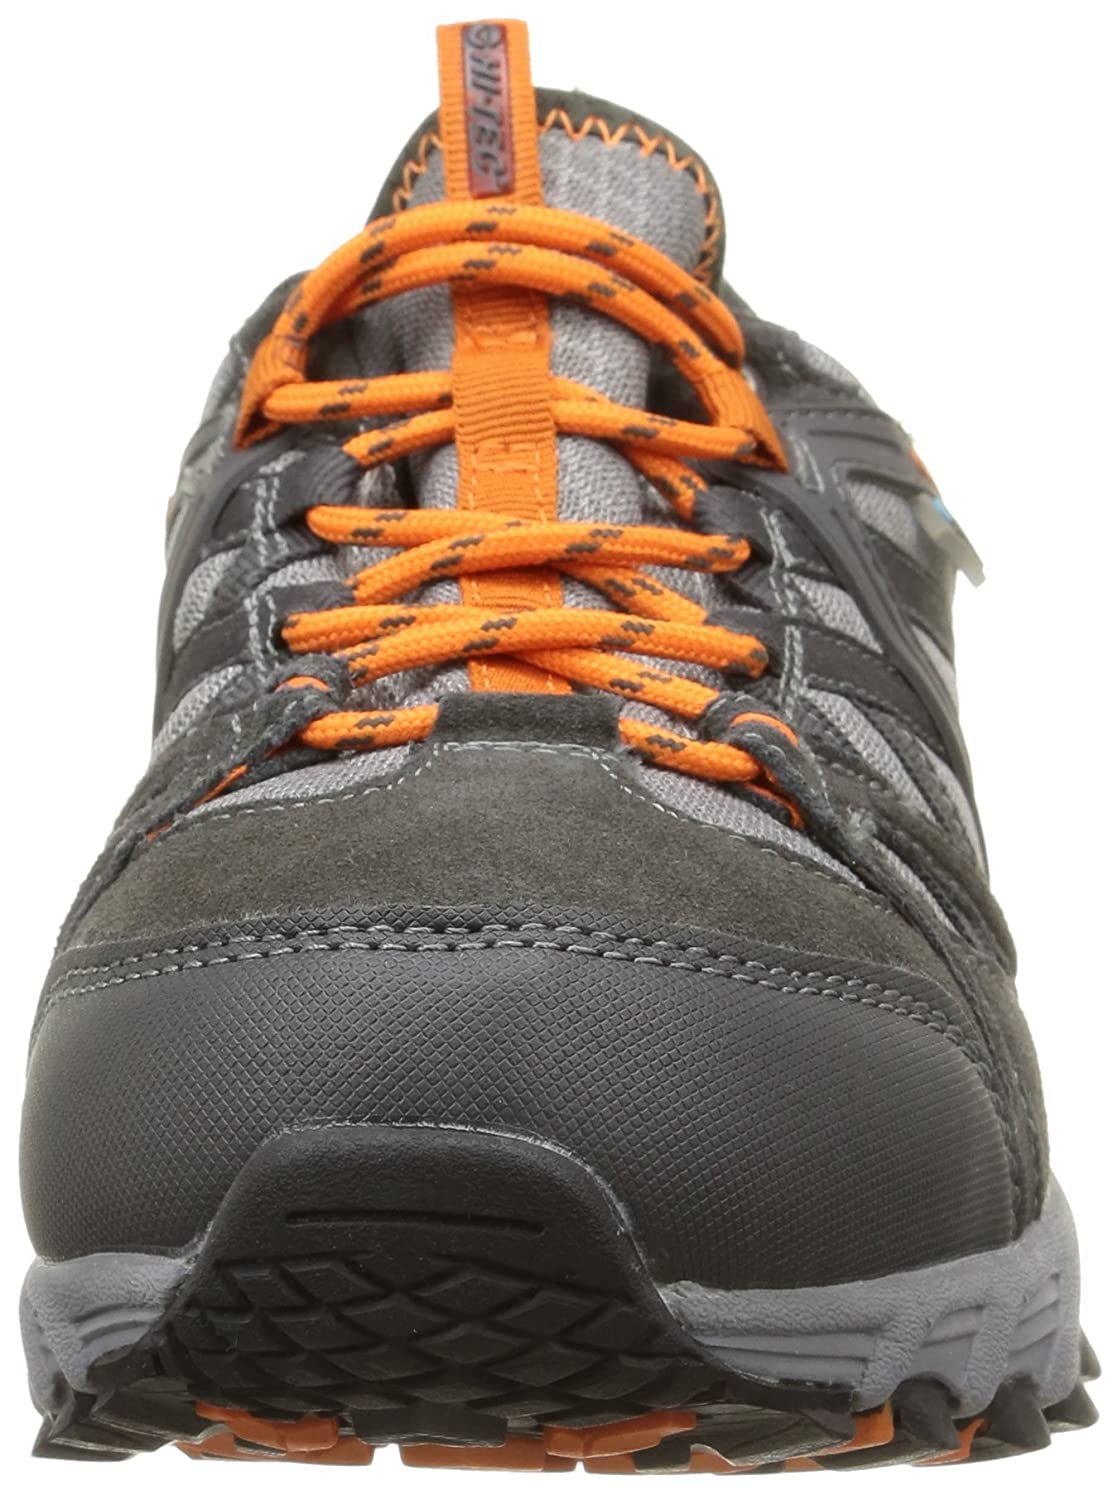 Hi-Tec Accelerate WP, Chaussures Multisport Outdoor Homme, Orange (Graphite/ Grey/Orange), 42 EU (8 UK): Amazon.fr: Chaussures et Sacs